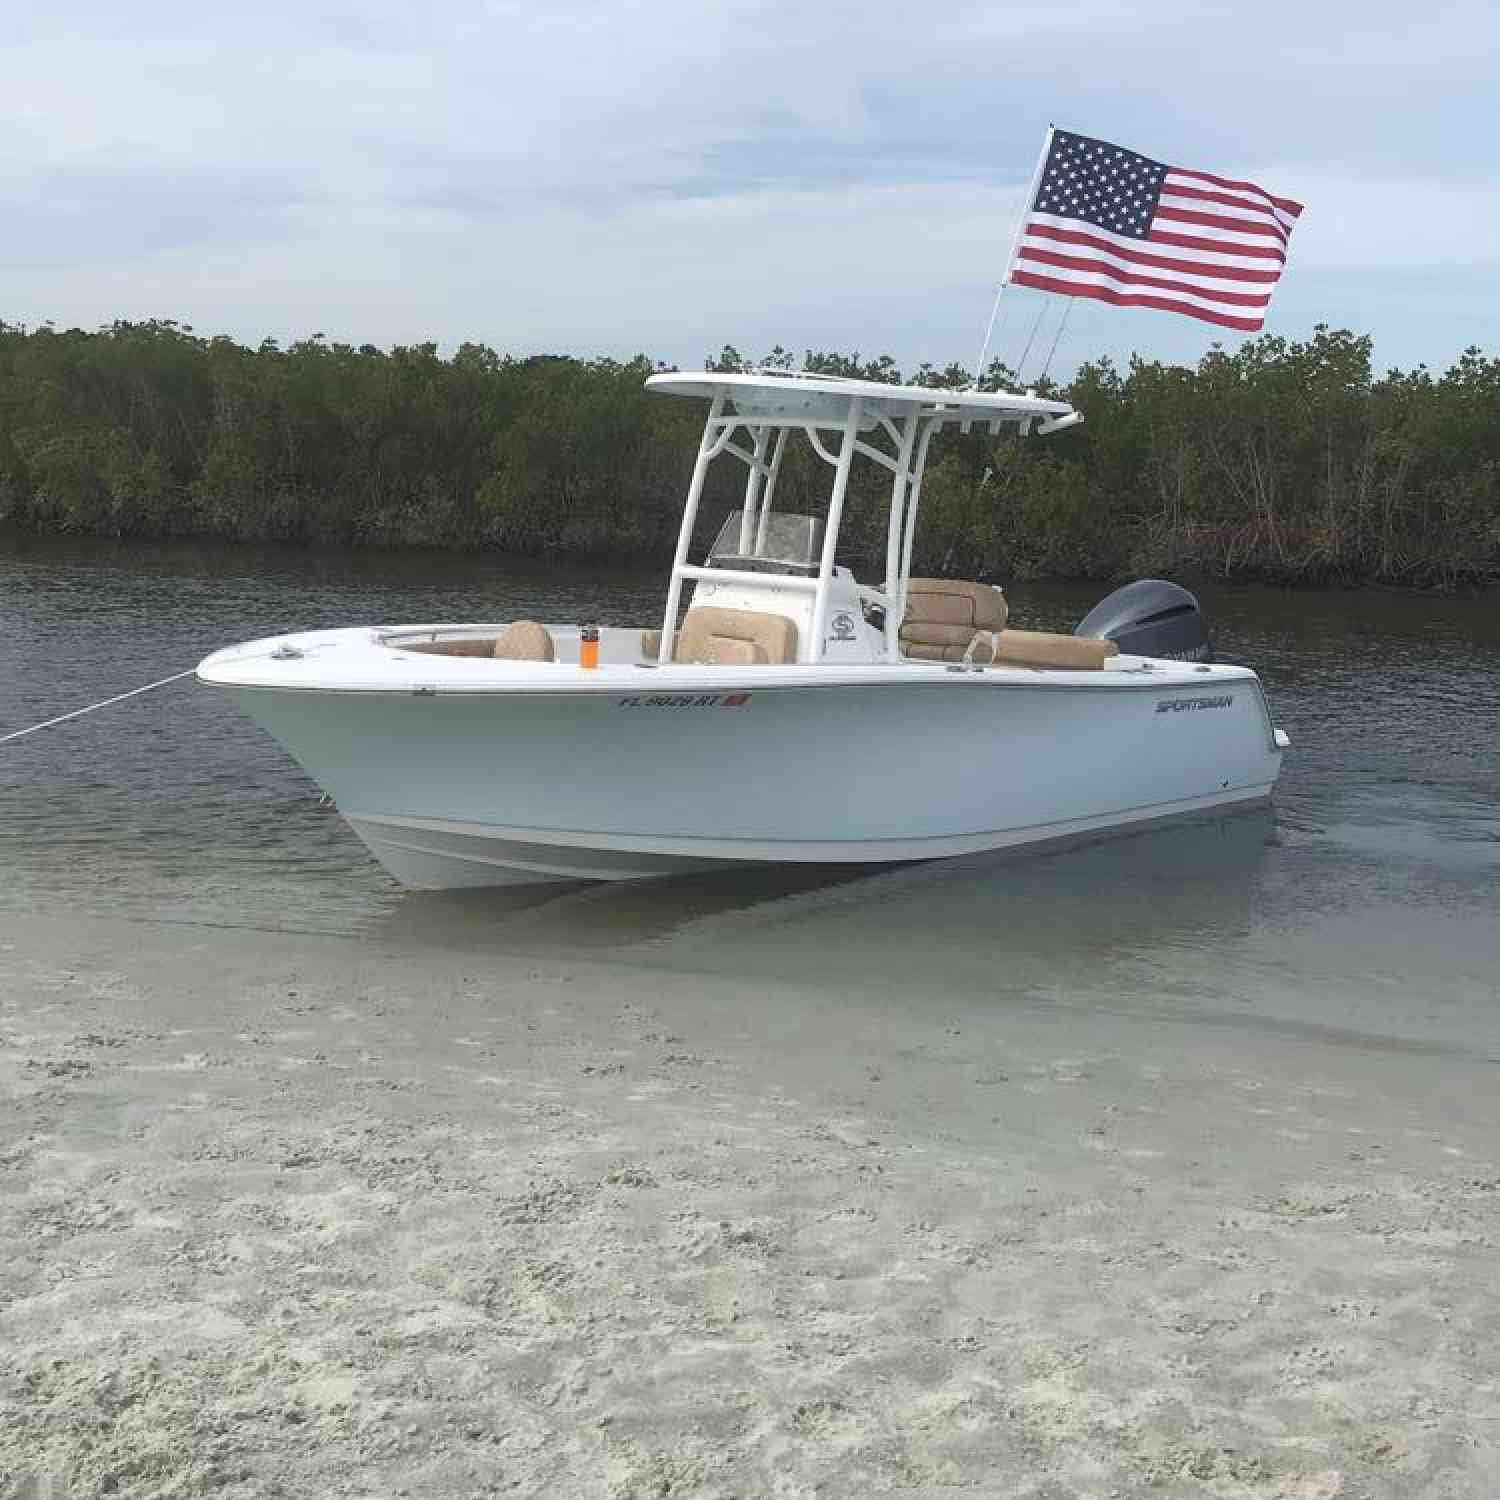 Title: Day at the sandbar - On board their Sportsman Open 232 Center Console - Location: Daytona beach Florida. Participating in the Photo Contest #SportsmanMay2019